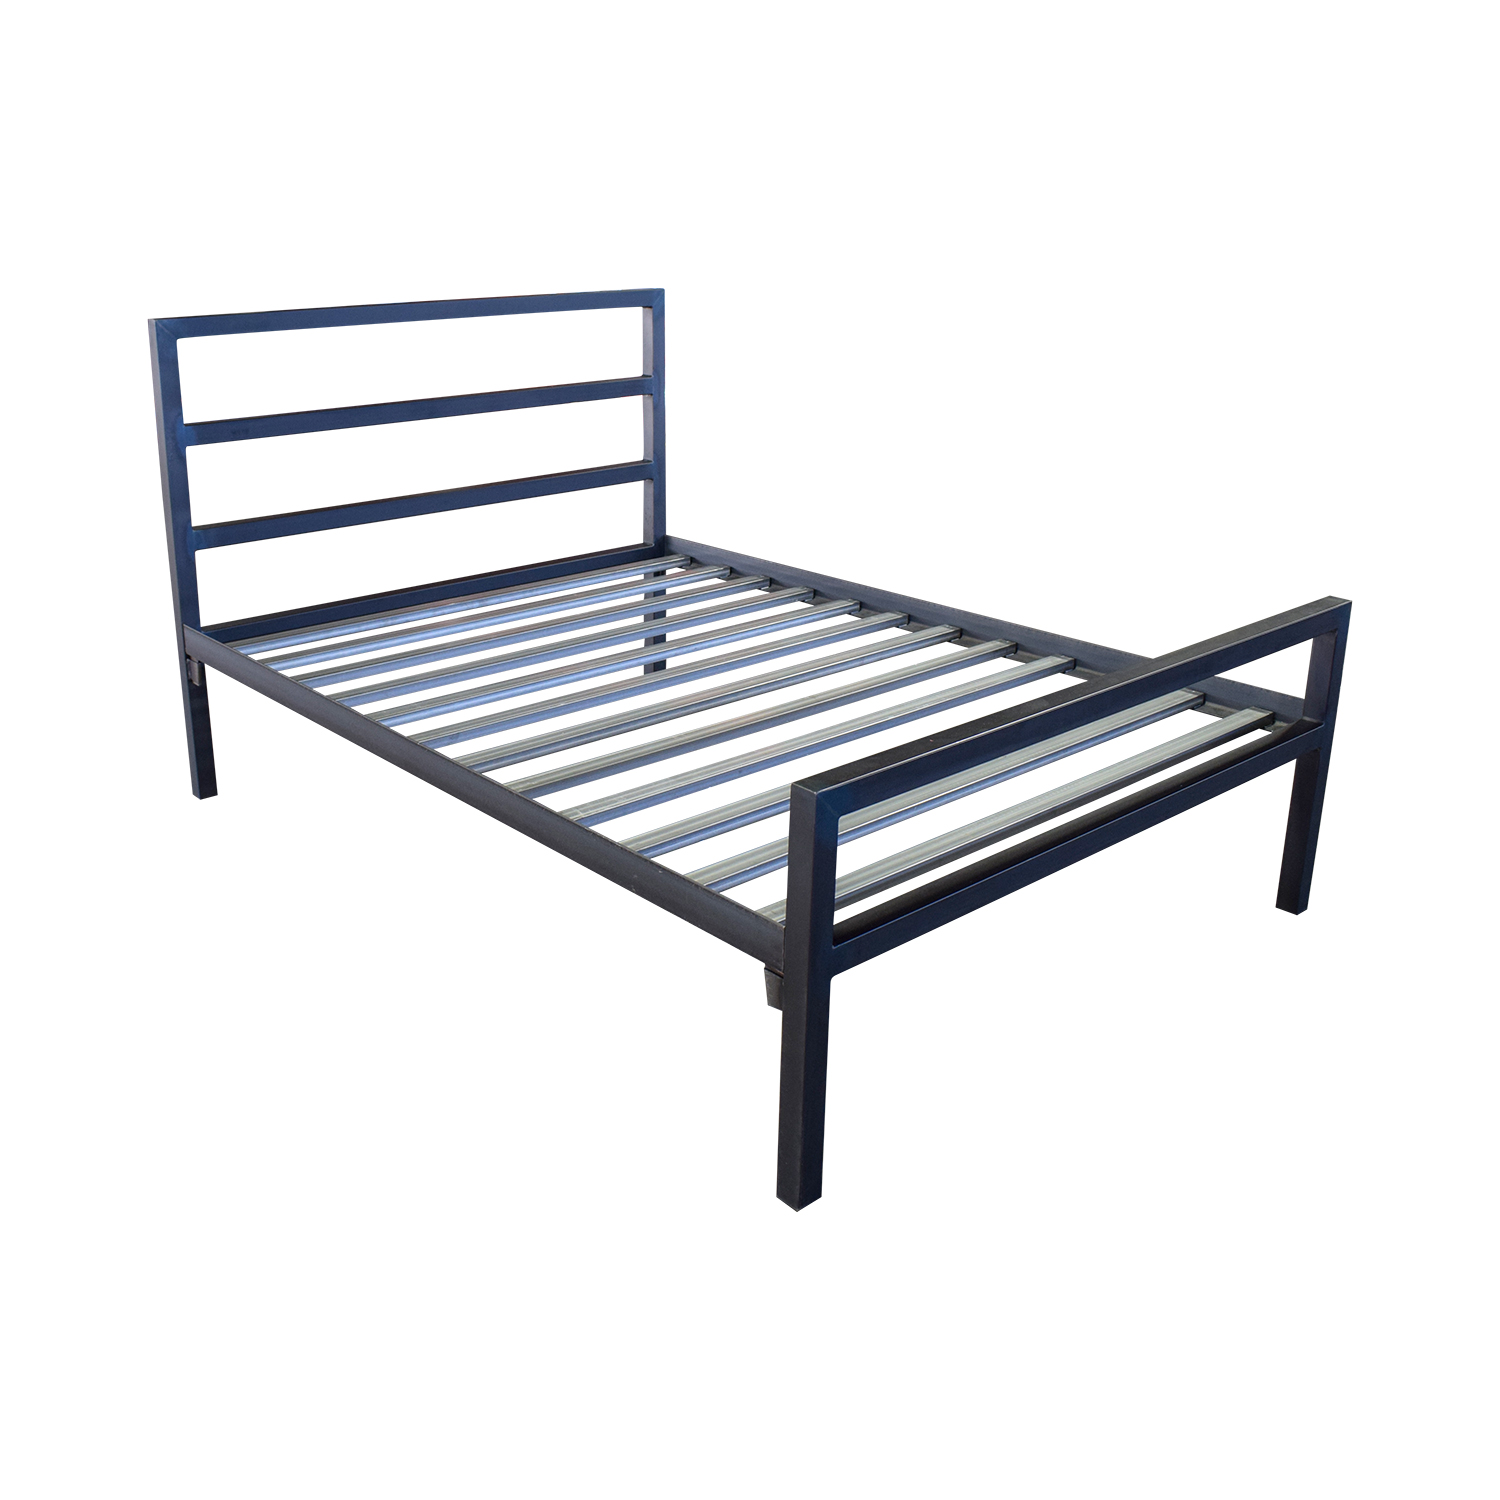 shop Room & Board Room & Board Gray Queen Bed Frame online